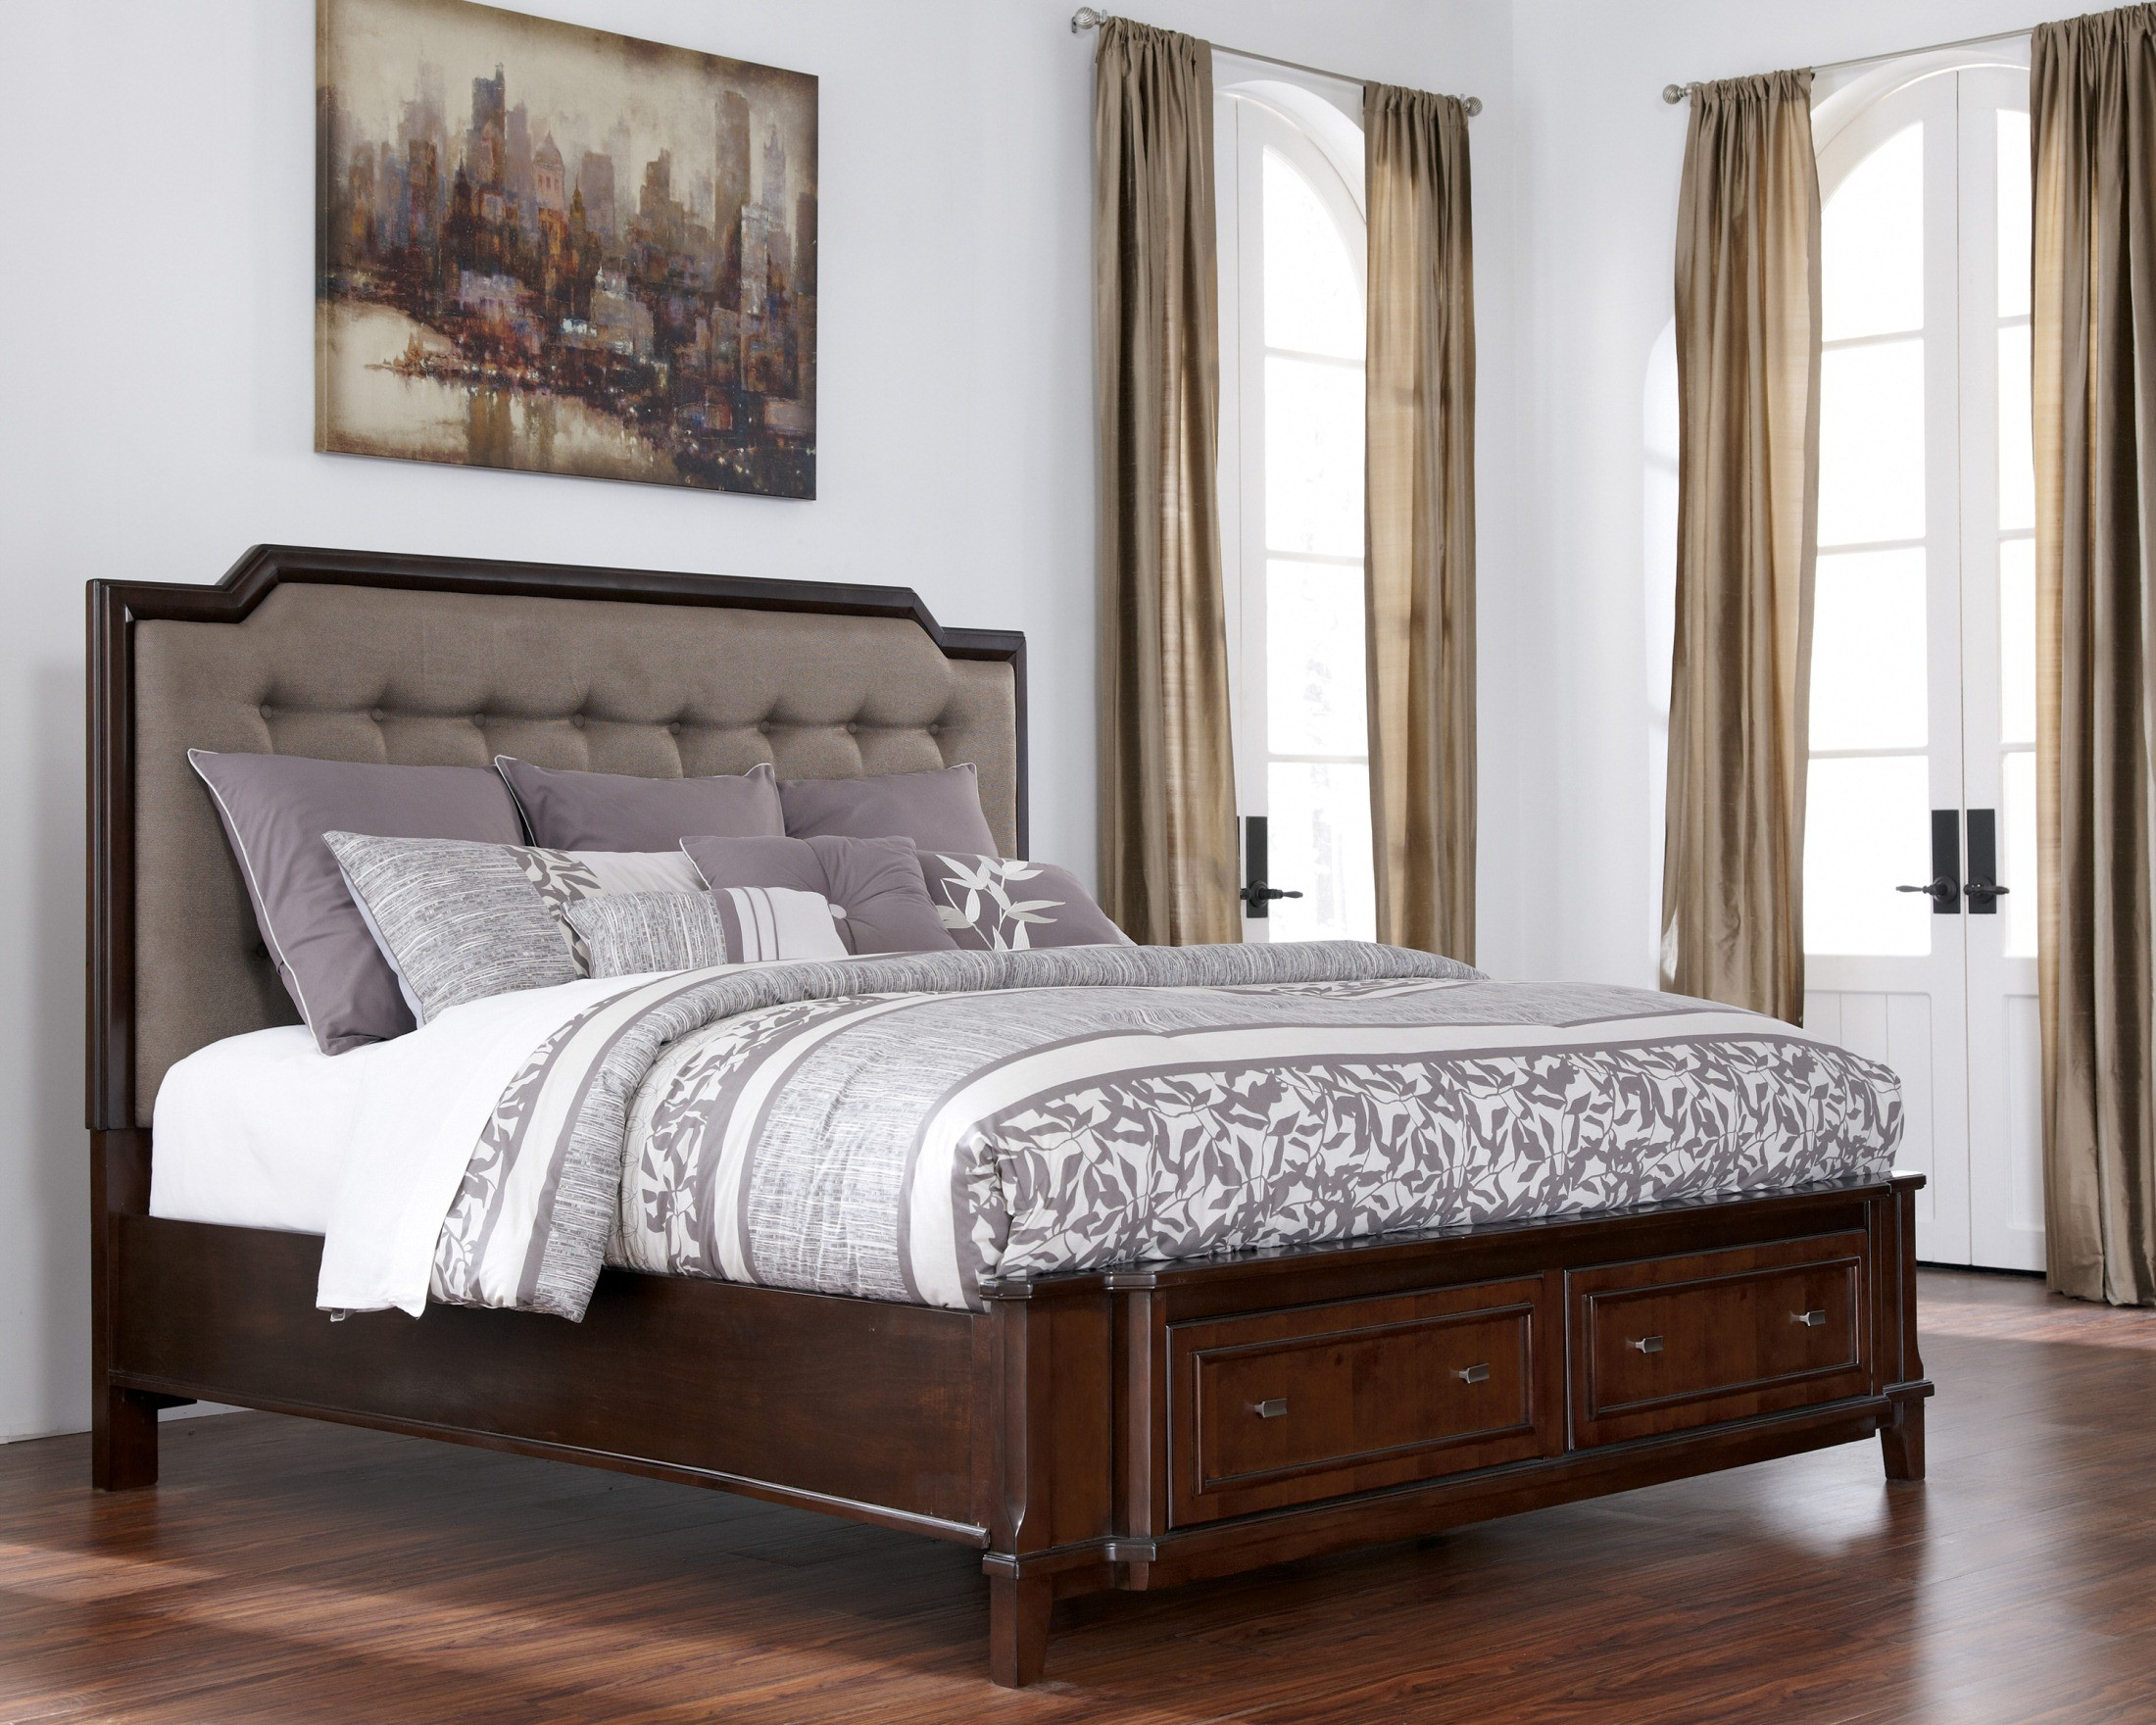 larimer cal king upholstered storage bed b654 78 76 95 millennium by ashley. Black Bedroom Furniture Sets. Home Design Ideas